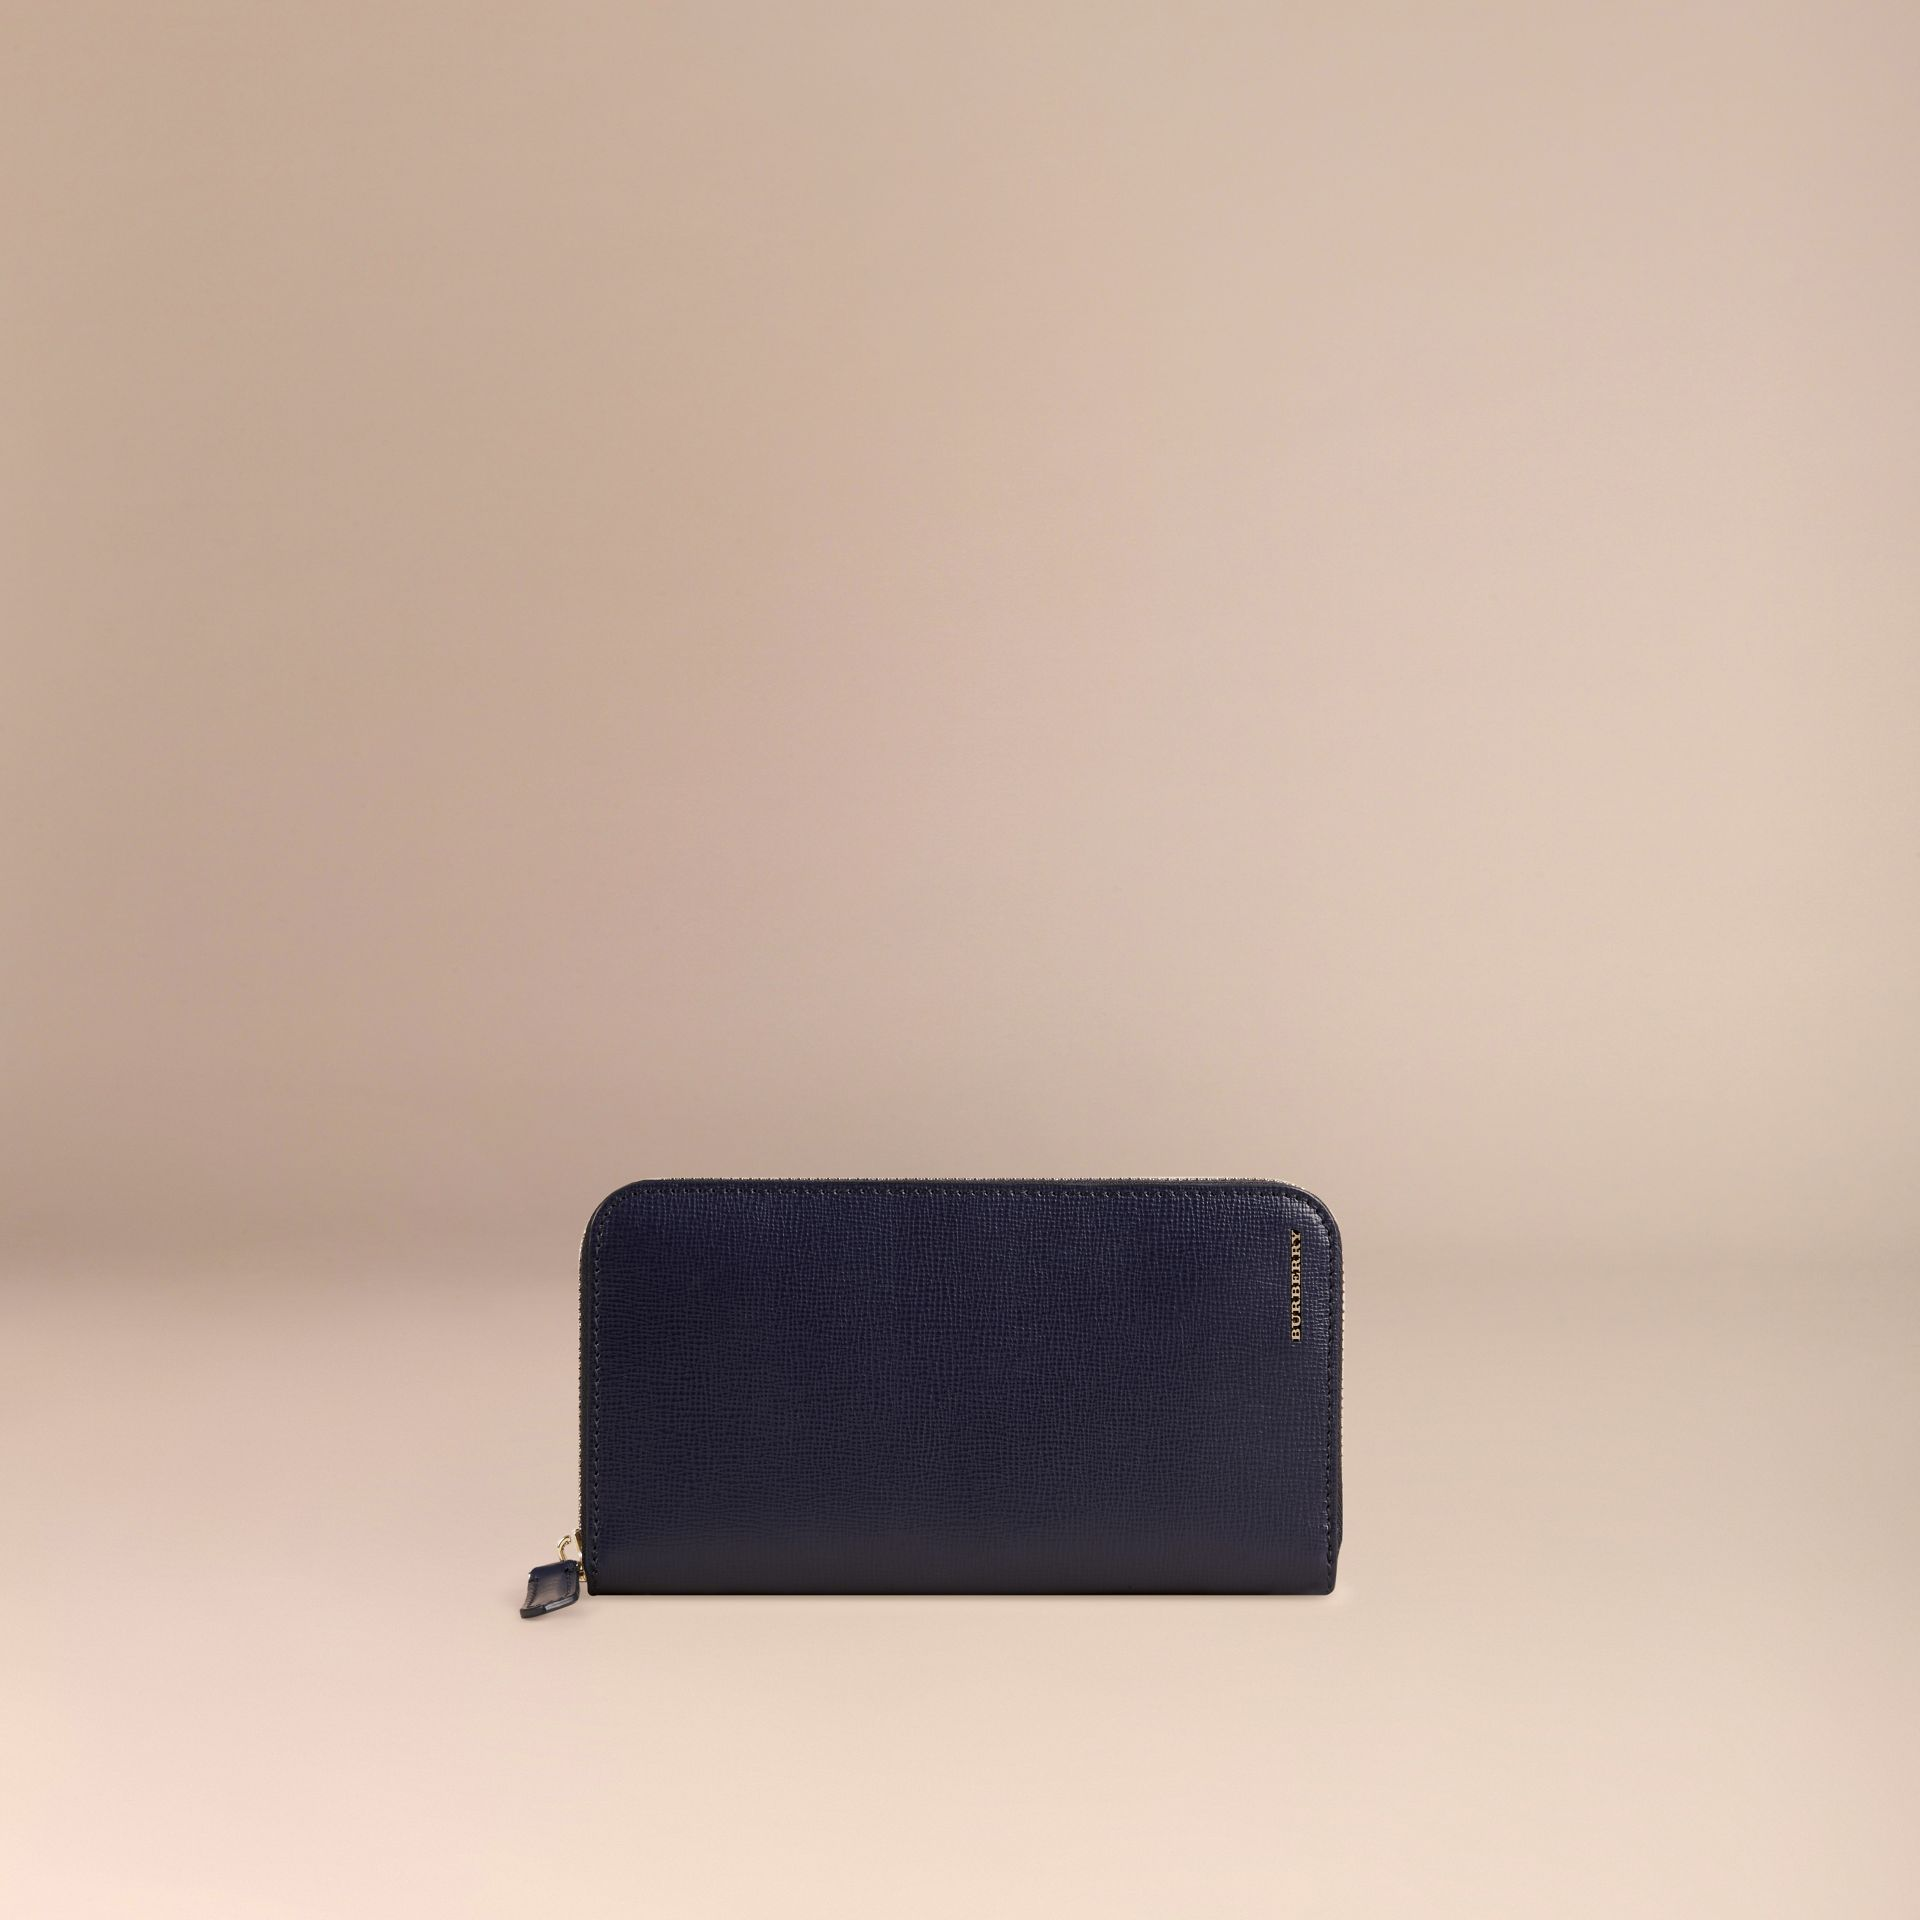 London Leather Ziparound Wallet Dark Navy - gallery image 3